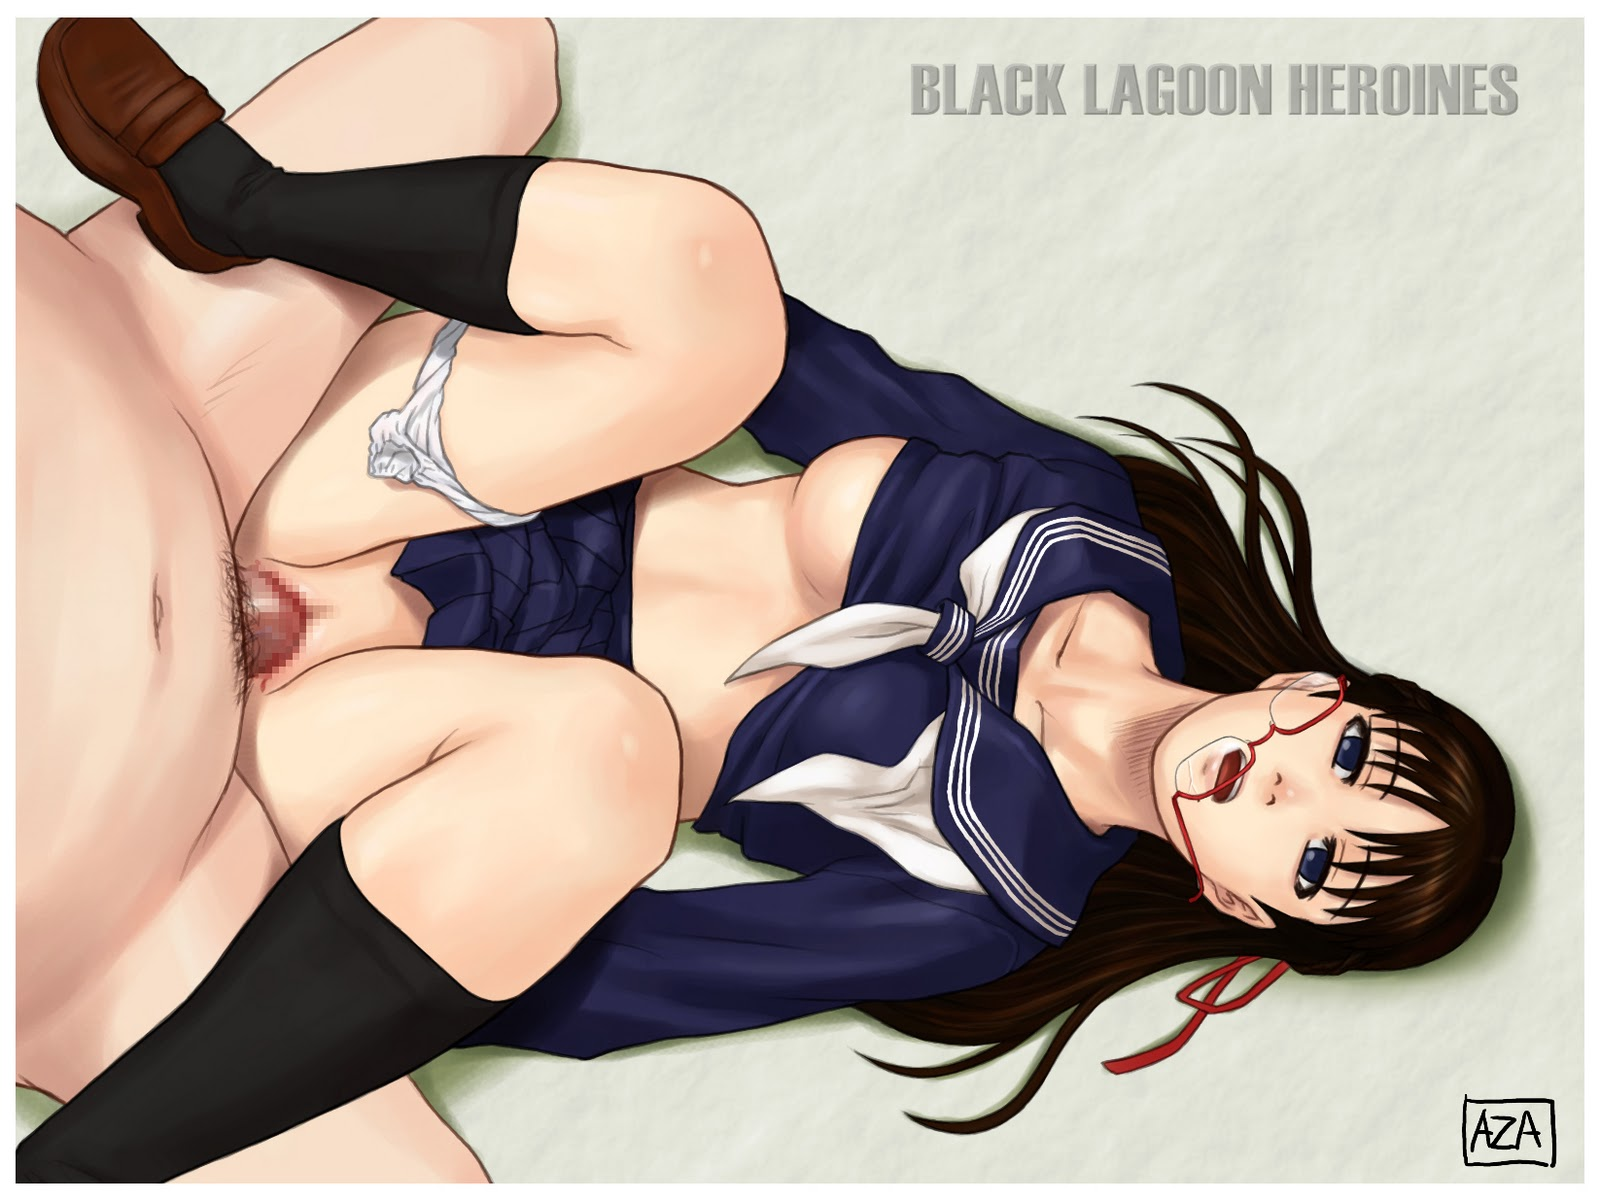 Pirate fucks black anime girl porn galleries